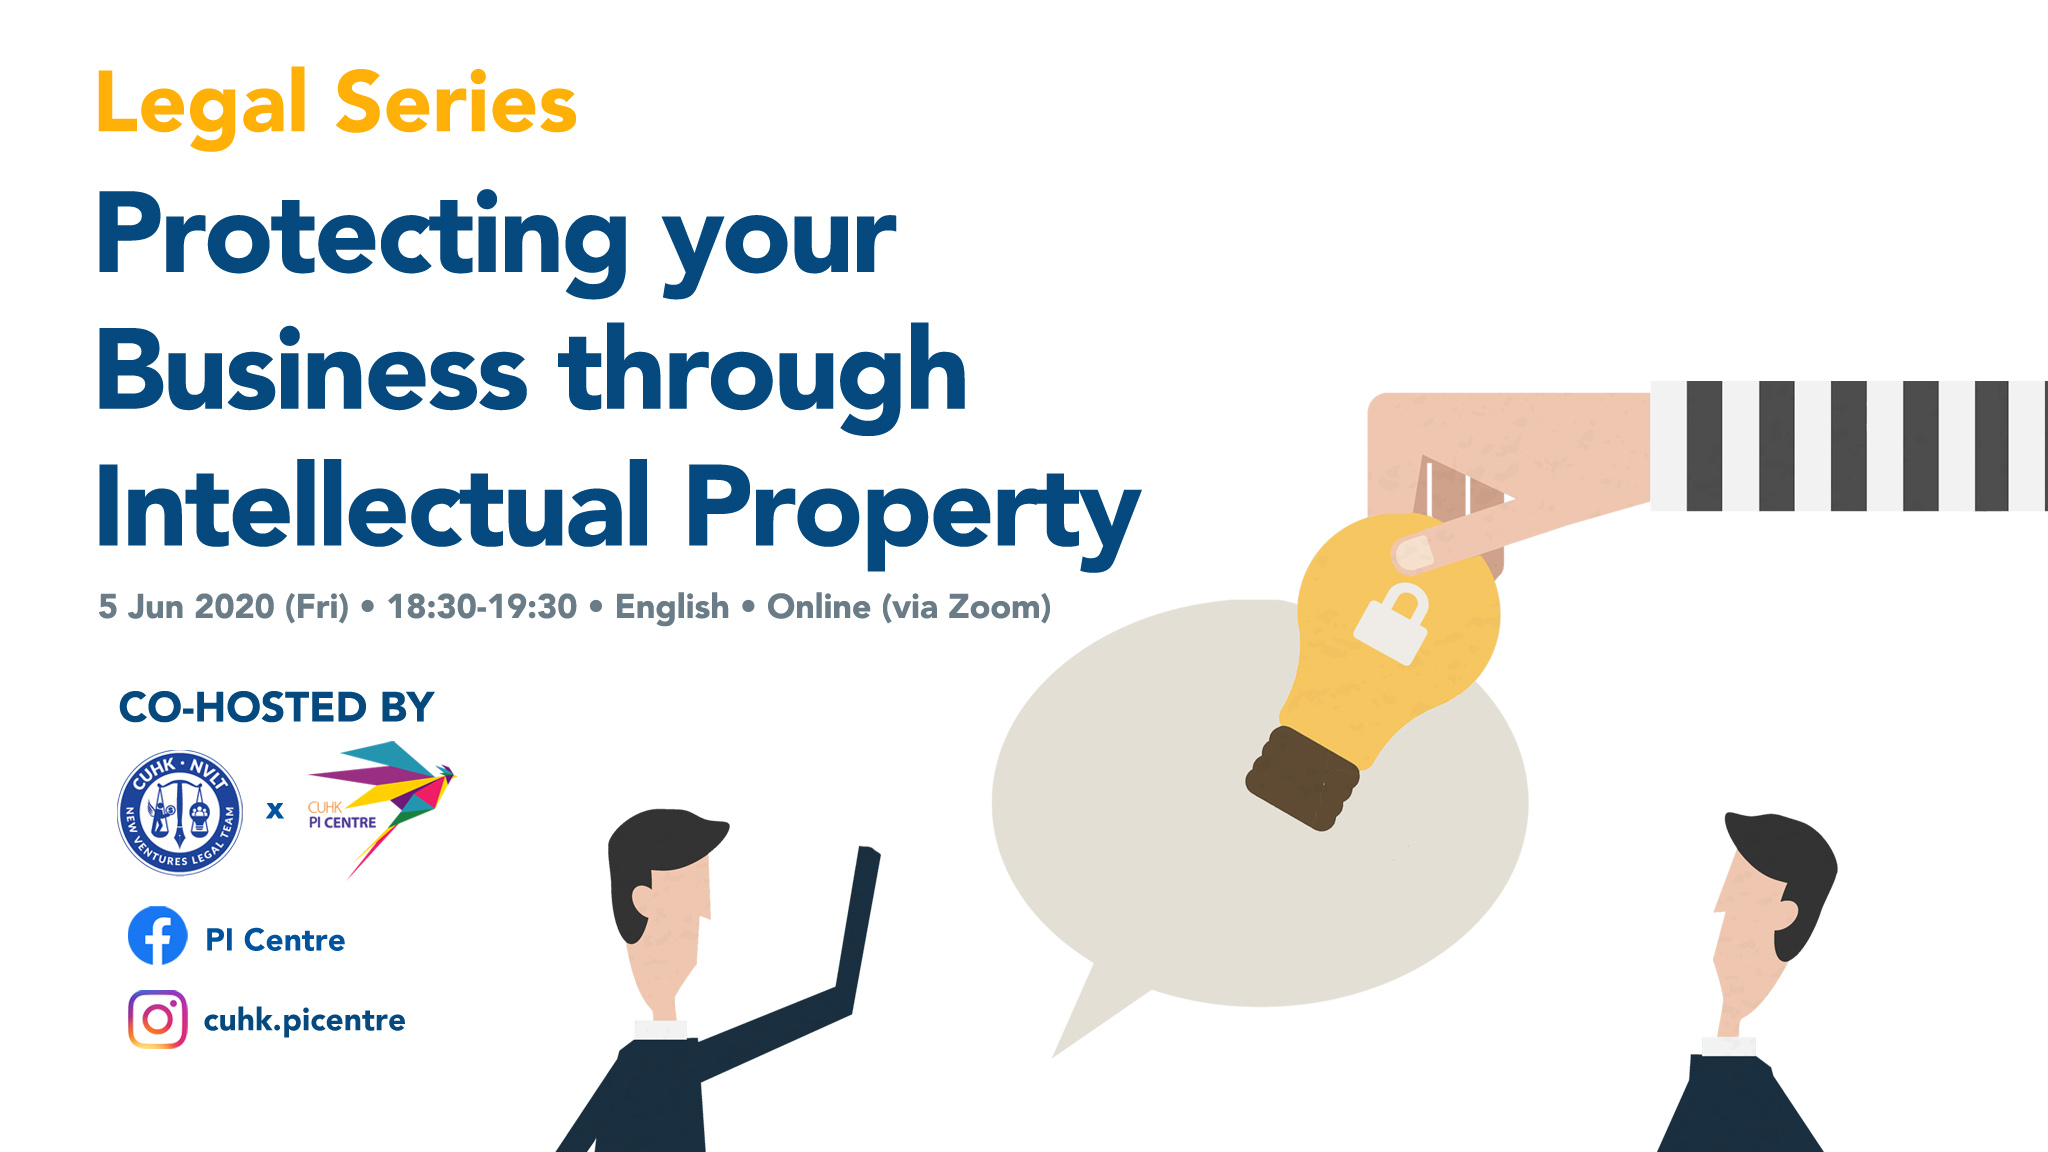 Legal Series: Protecting your Business through Intellectual Property Workshop